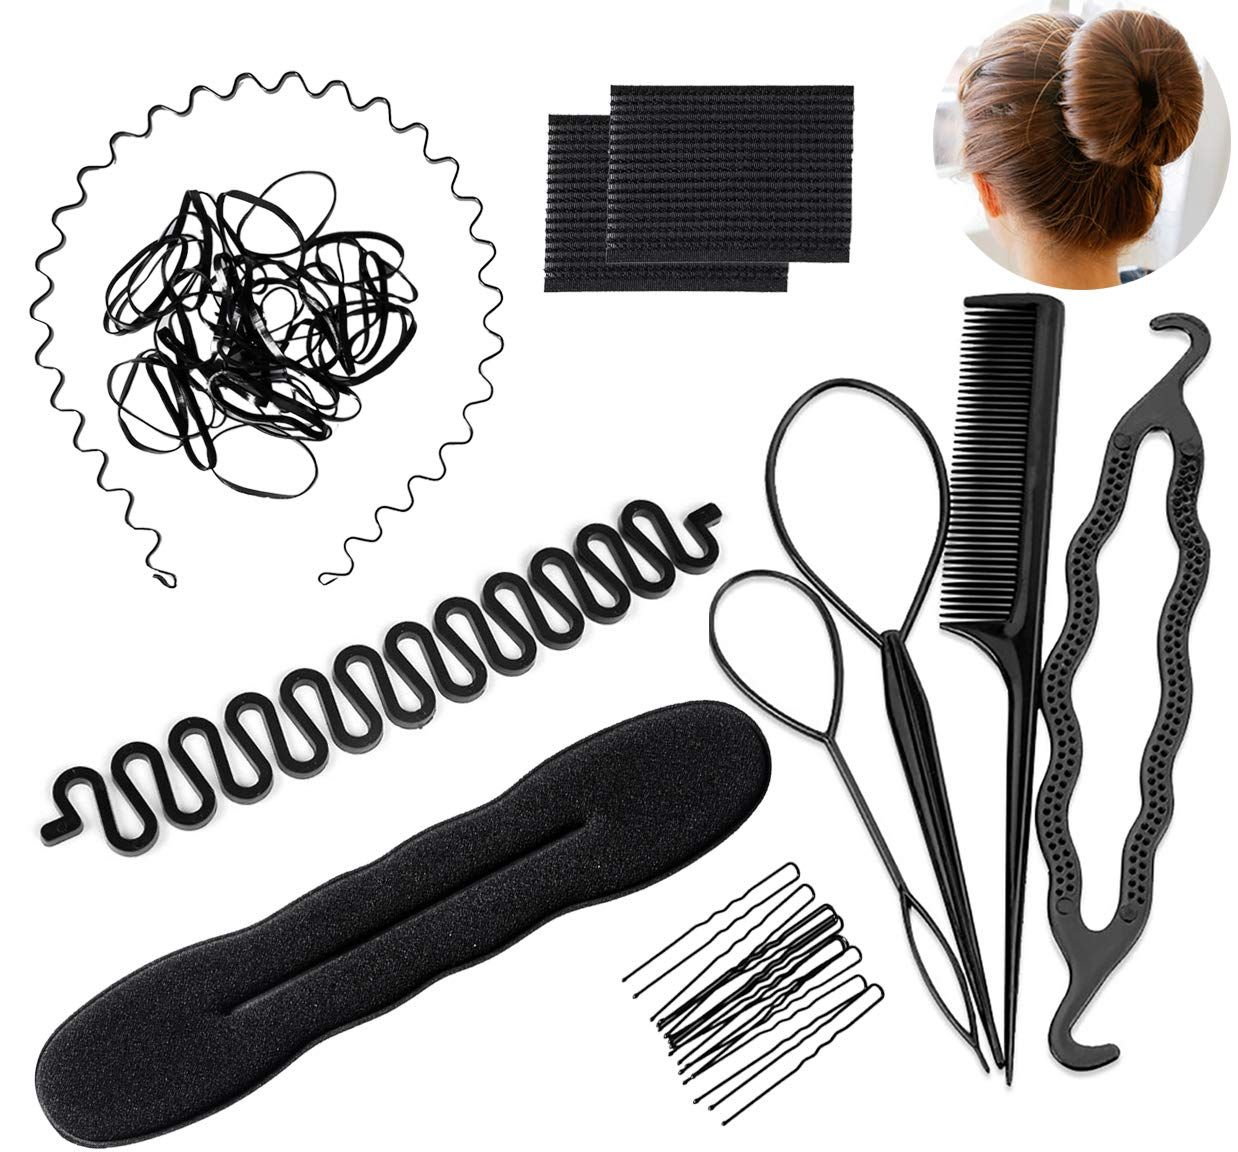 11 Pcs Hair Braid Tool Hair Styling Accessories Kit Set Bun Maker Hair Styling Accessories K Bun Maker Hairstyles Hair Braiding Tool Fashion Hair Accessories